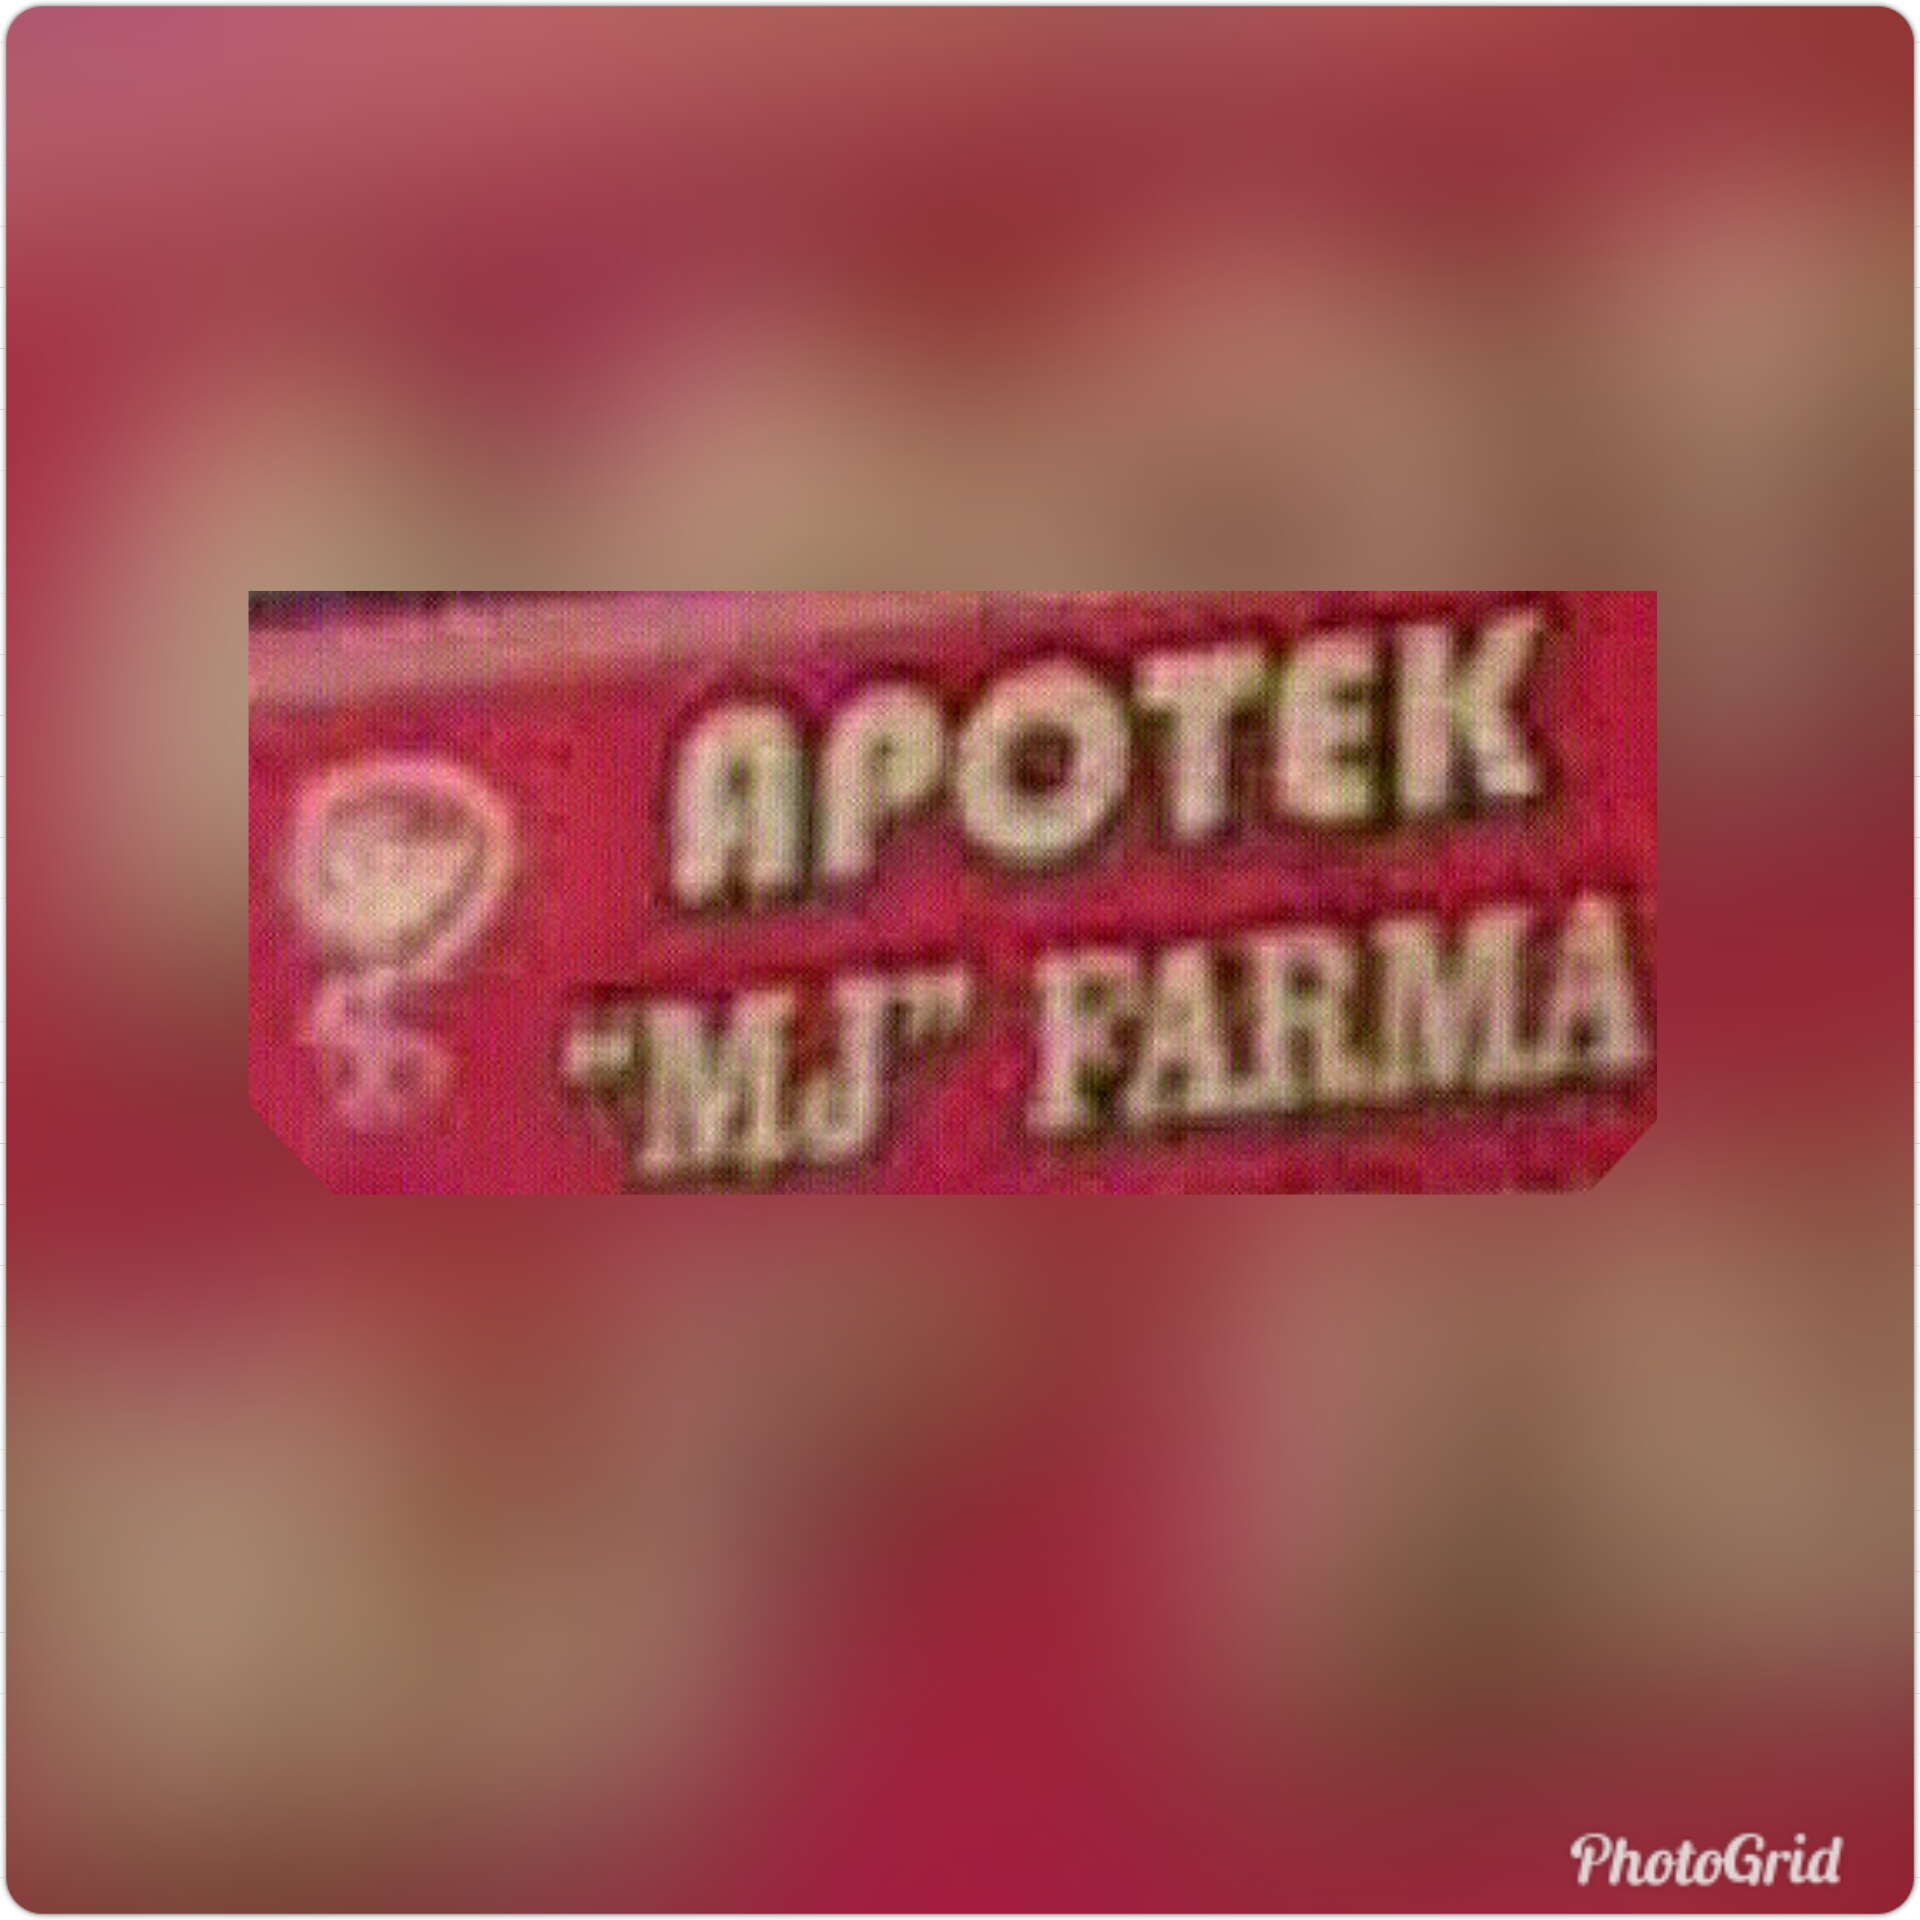 Apotek MJ Farma